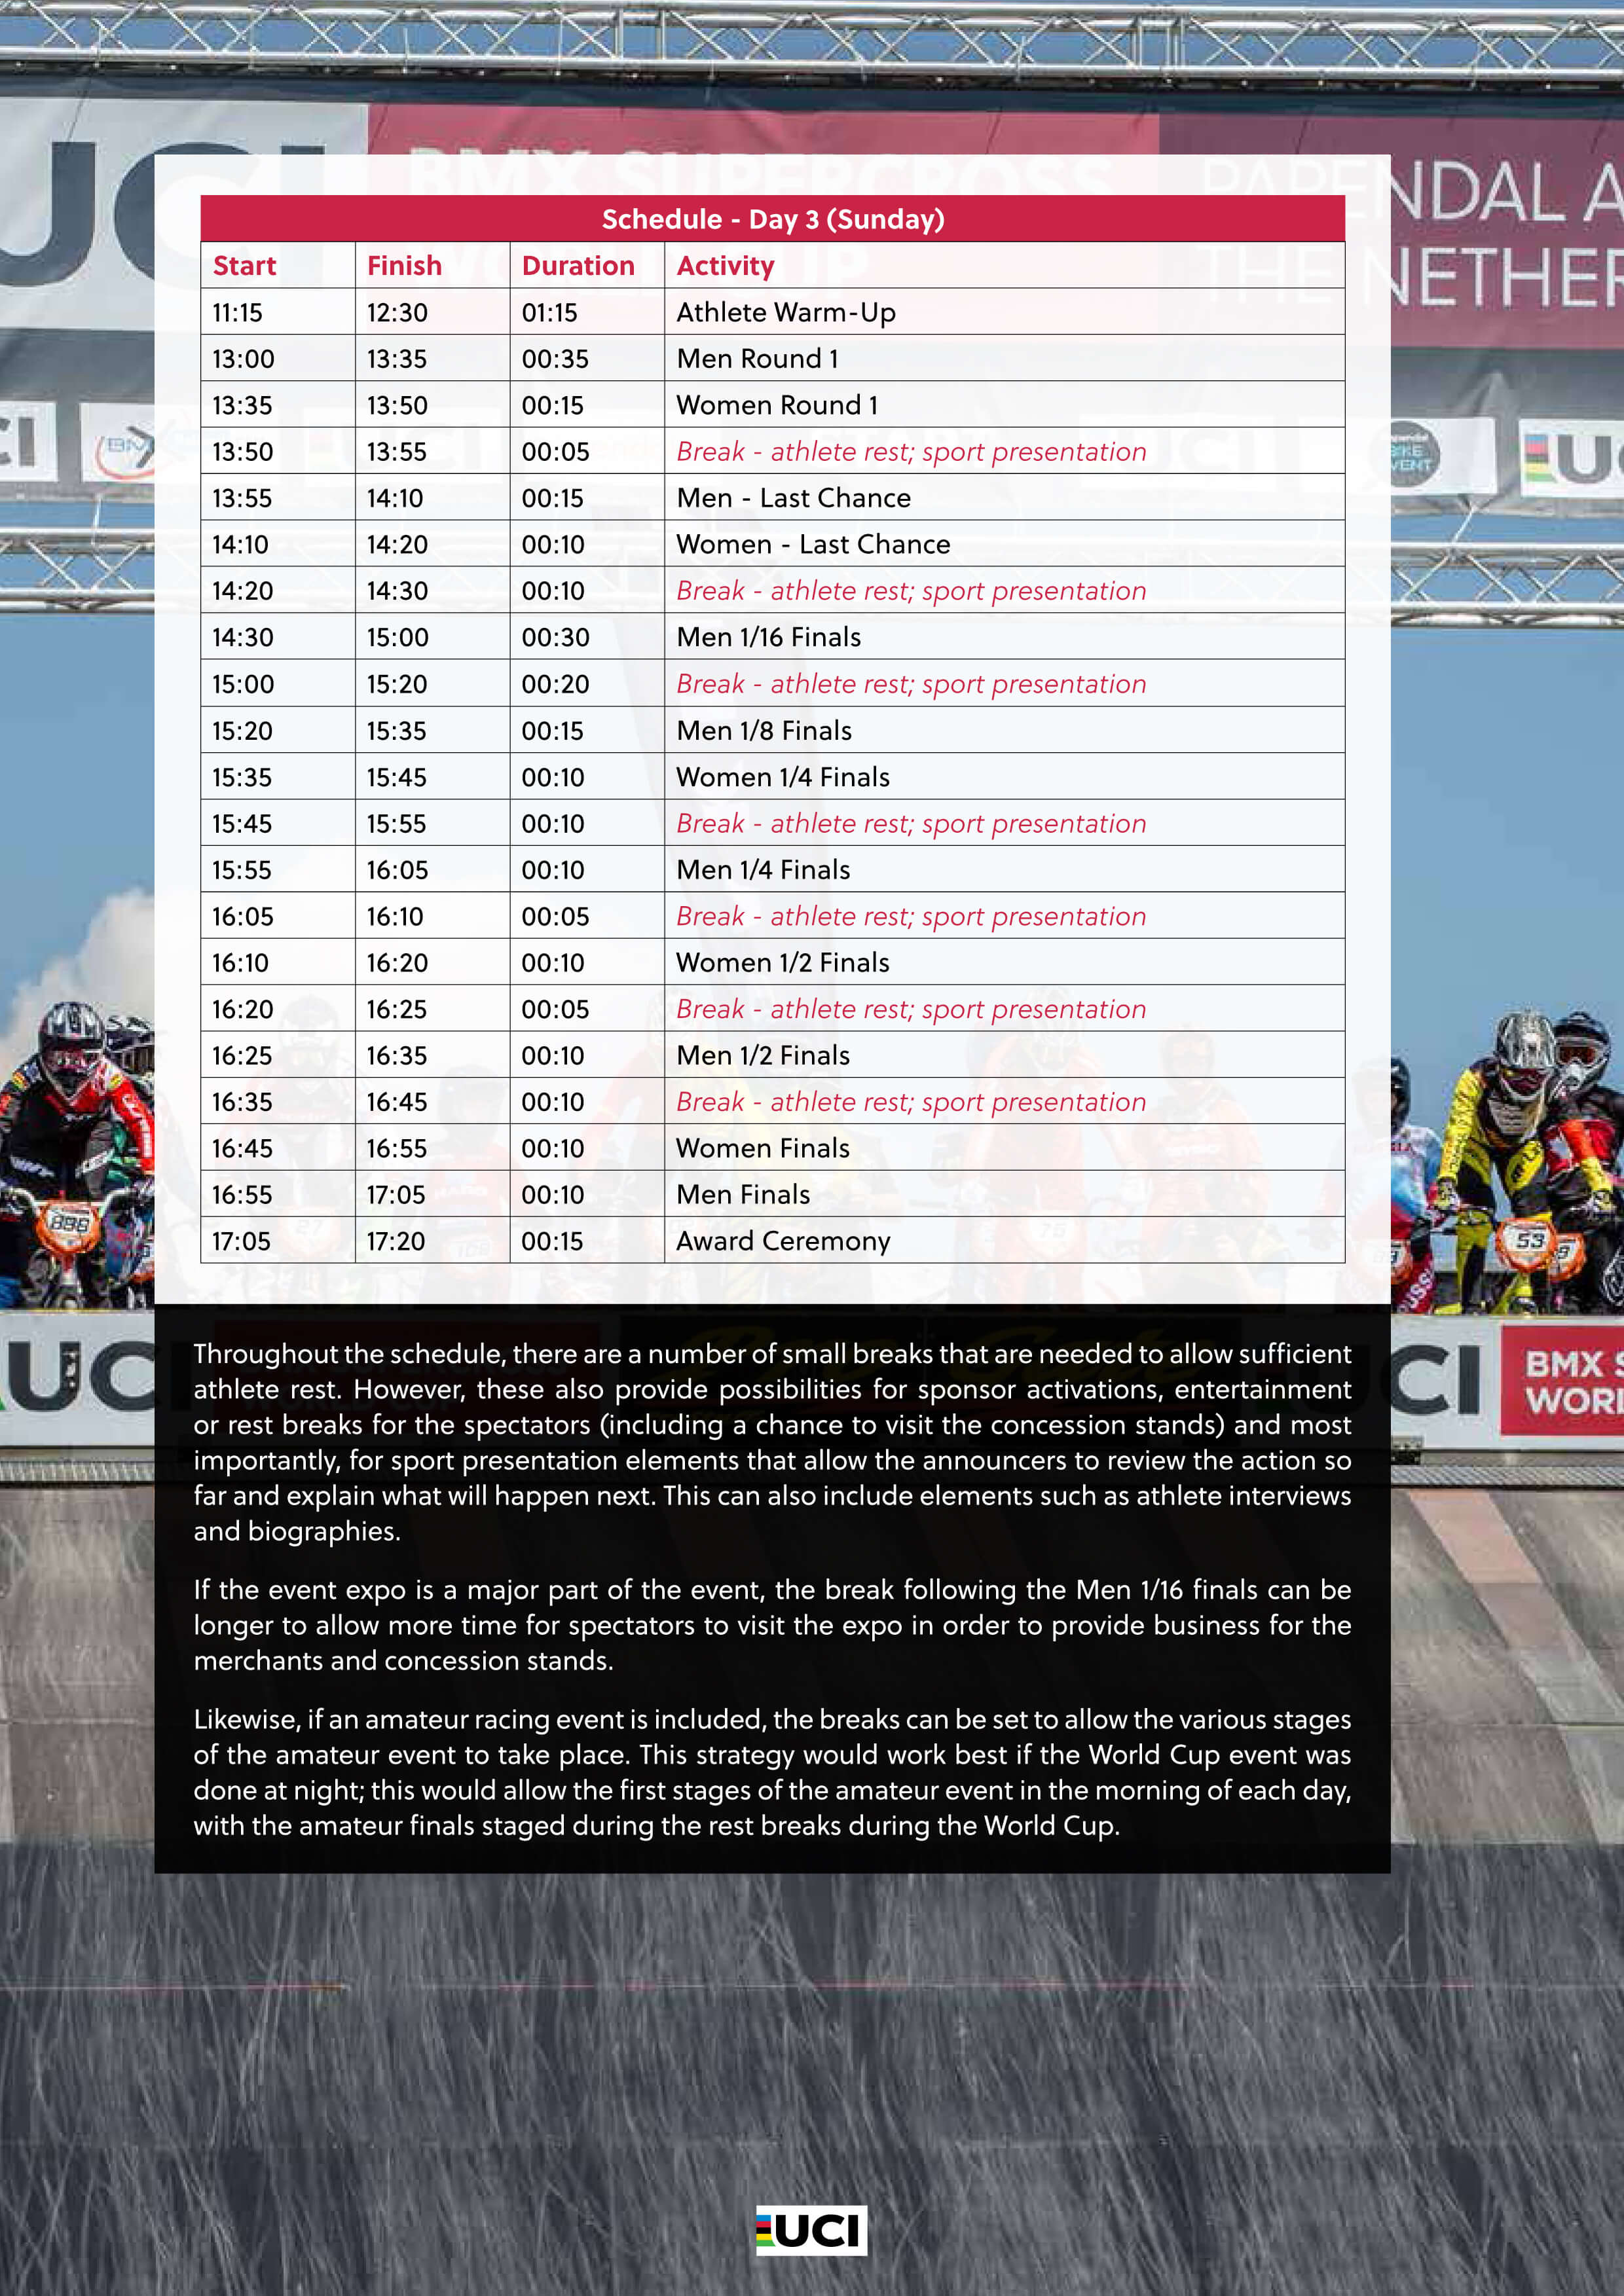 2017 UCI BMX Supercross World Cup Event Schedule Part 2